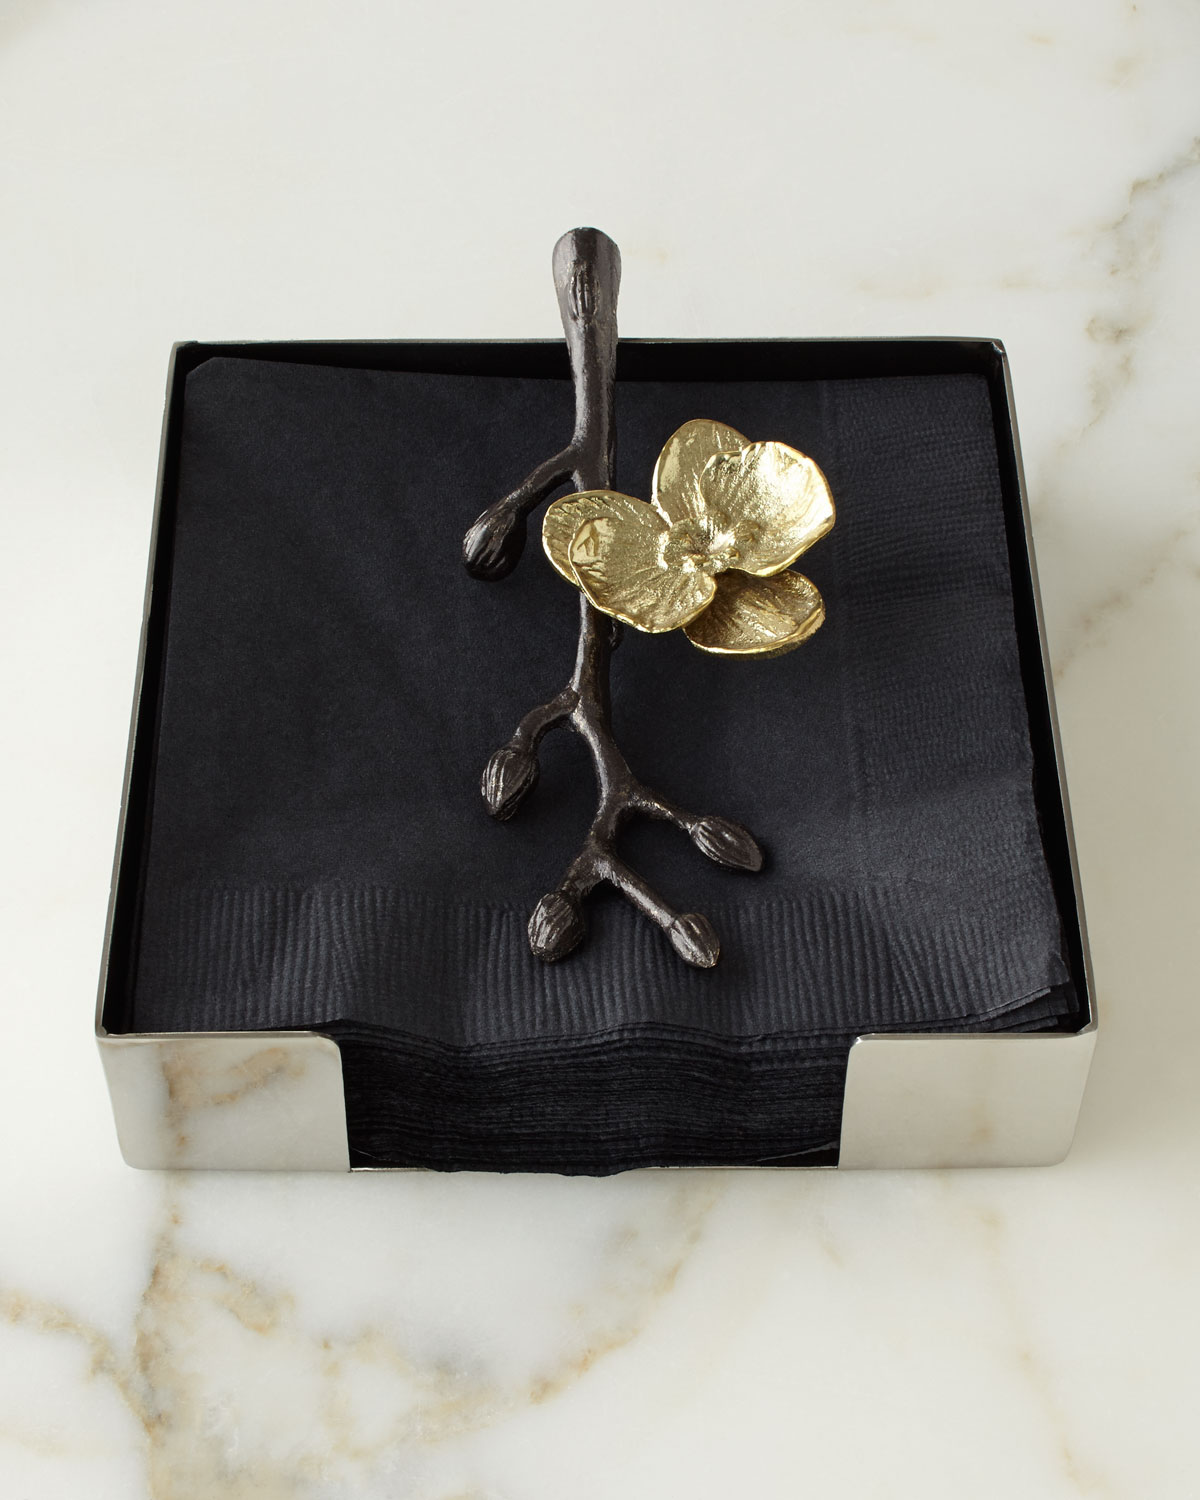 Michael Aram Barware & accessorys GOLD ORCHID COCKTAIL NAPKIN HOLDER